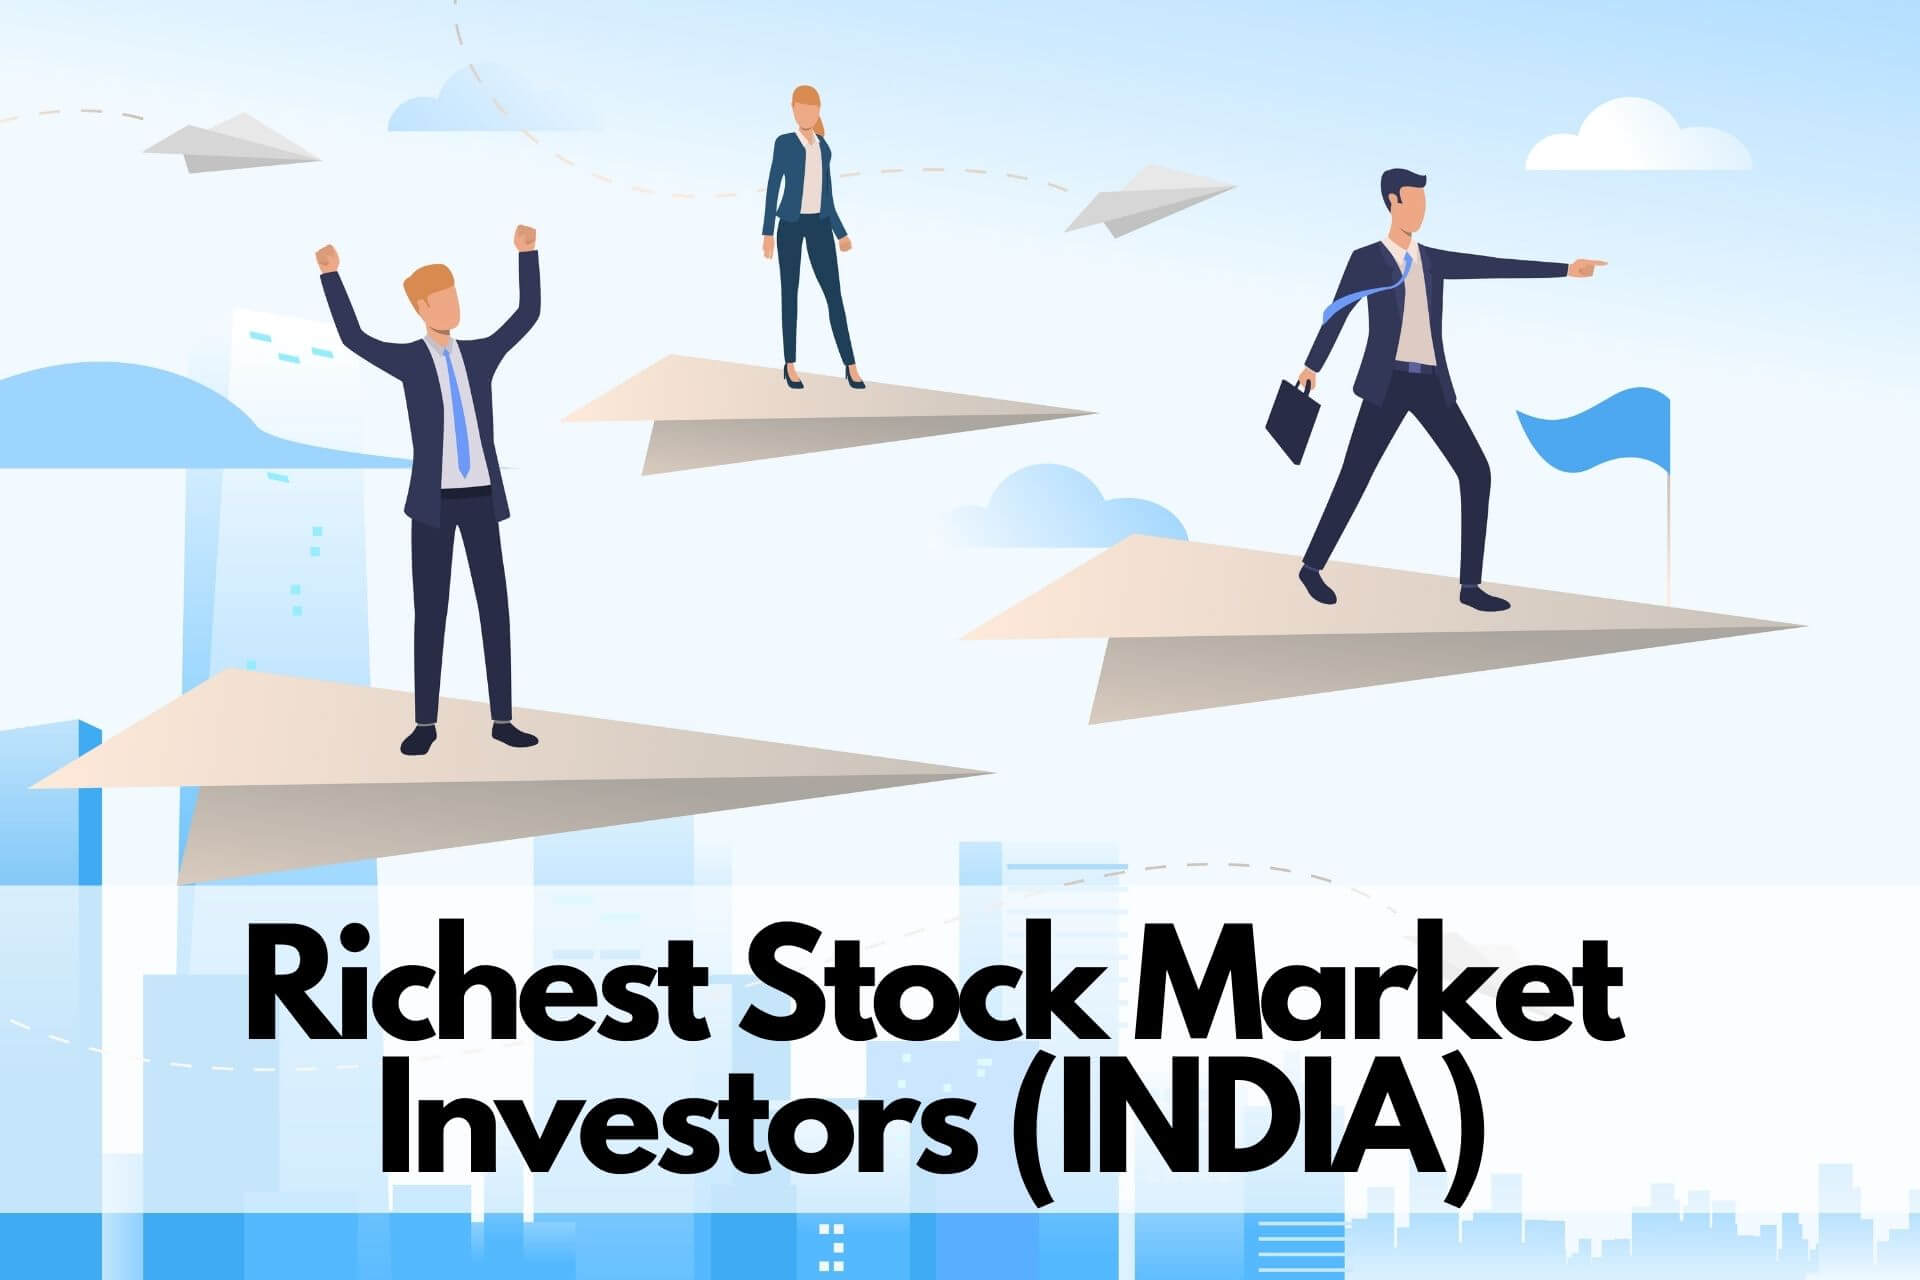 list of richest and most successfull stock market investors in India